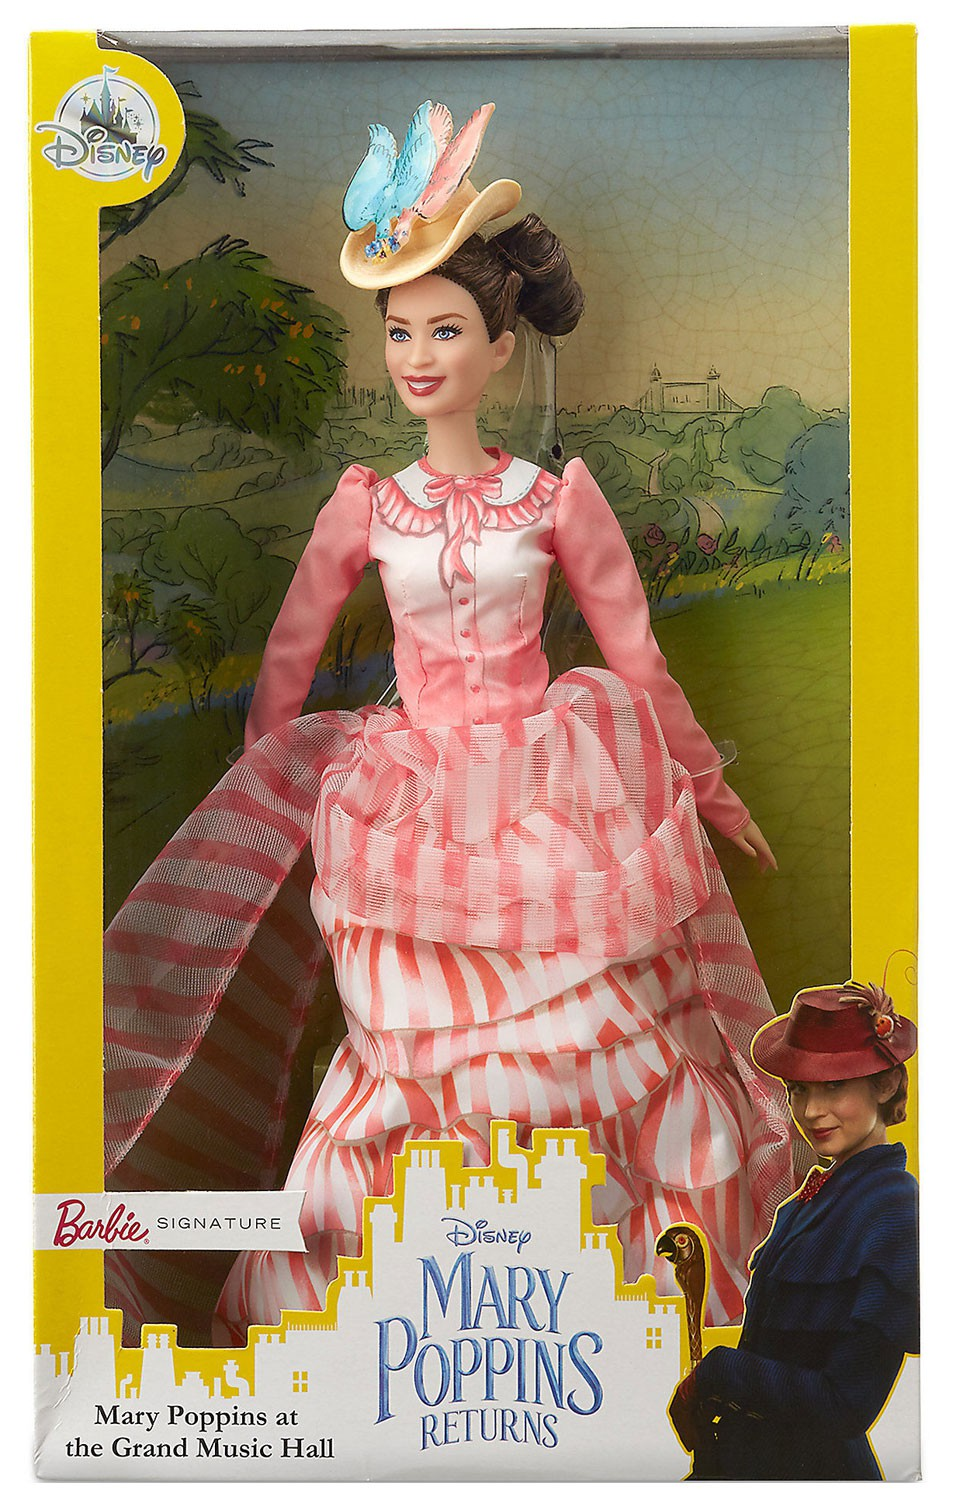 Disney Mary Poppins Returns Barbie Signature Doll New with Box by